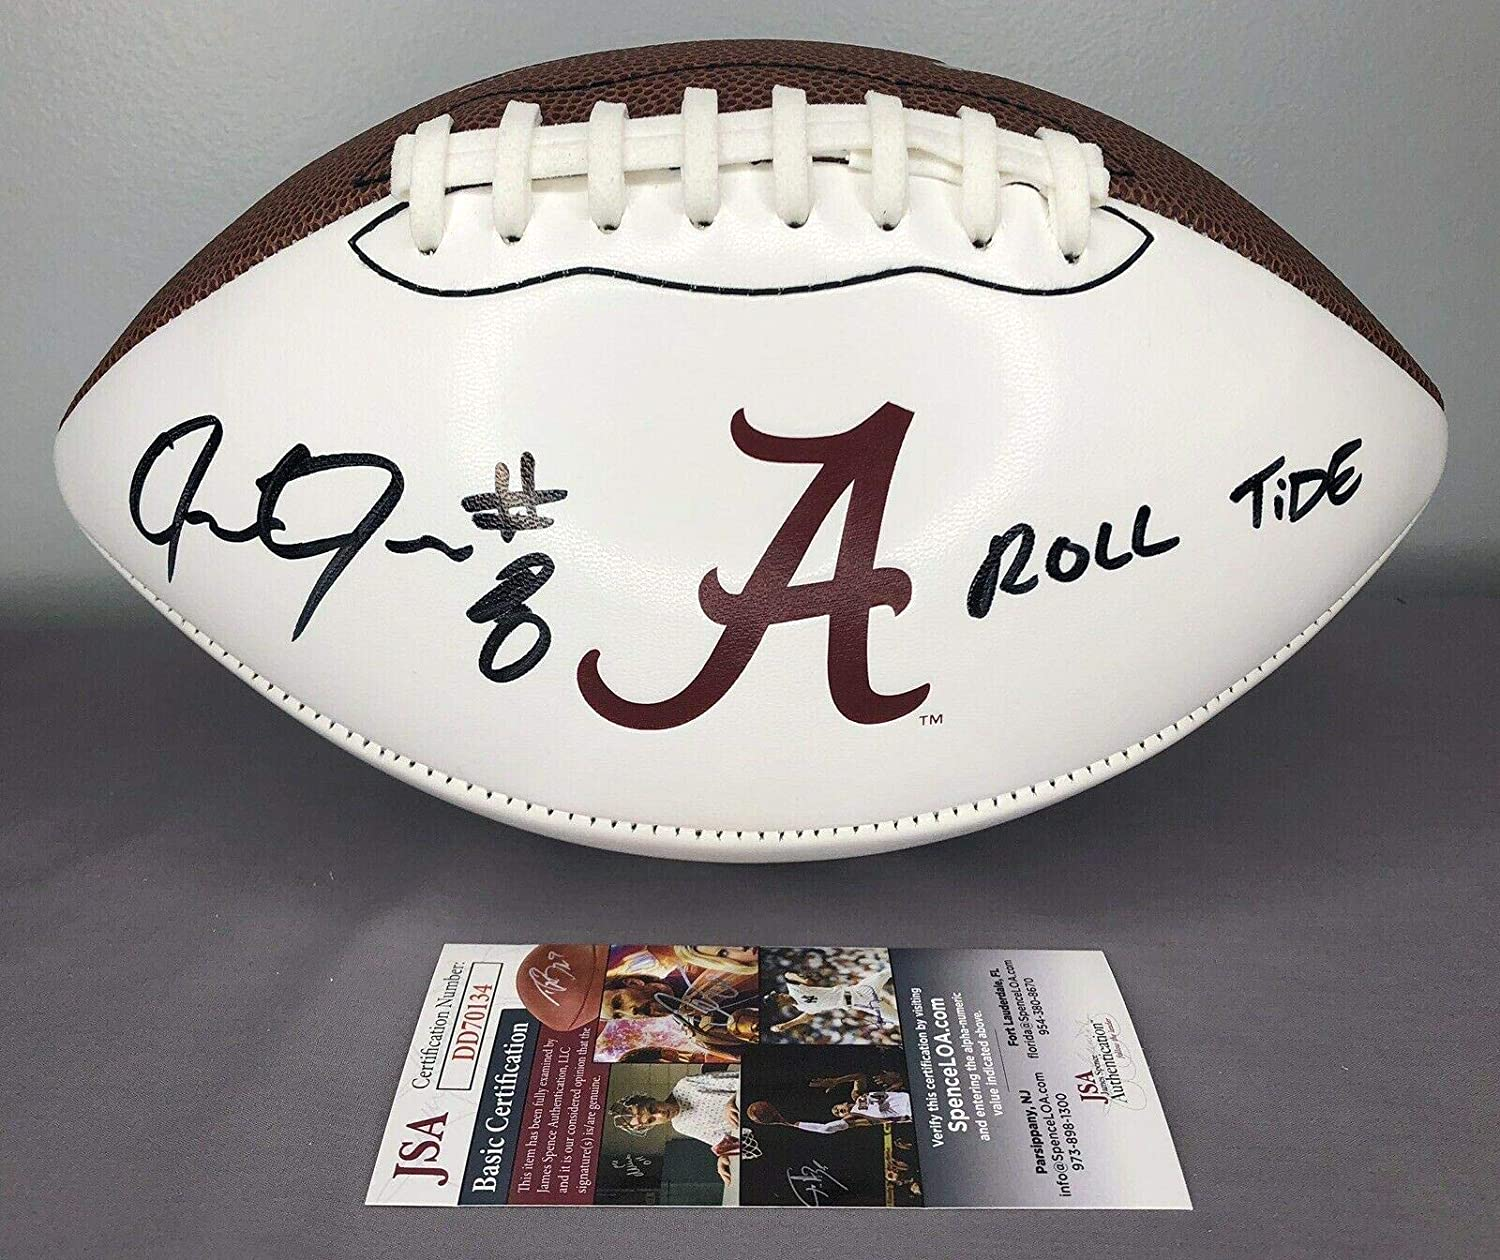 Josh Jacobs SIGNED Alabama Crimson Tide Nike Football w/COA ~ Roll Tide - JSA Certified - Autographed College Footballs